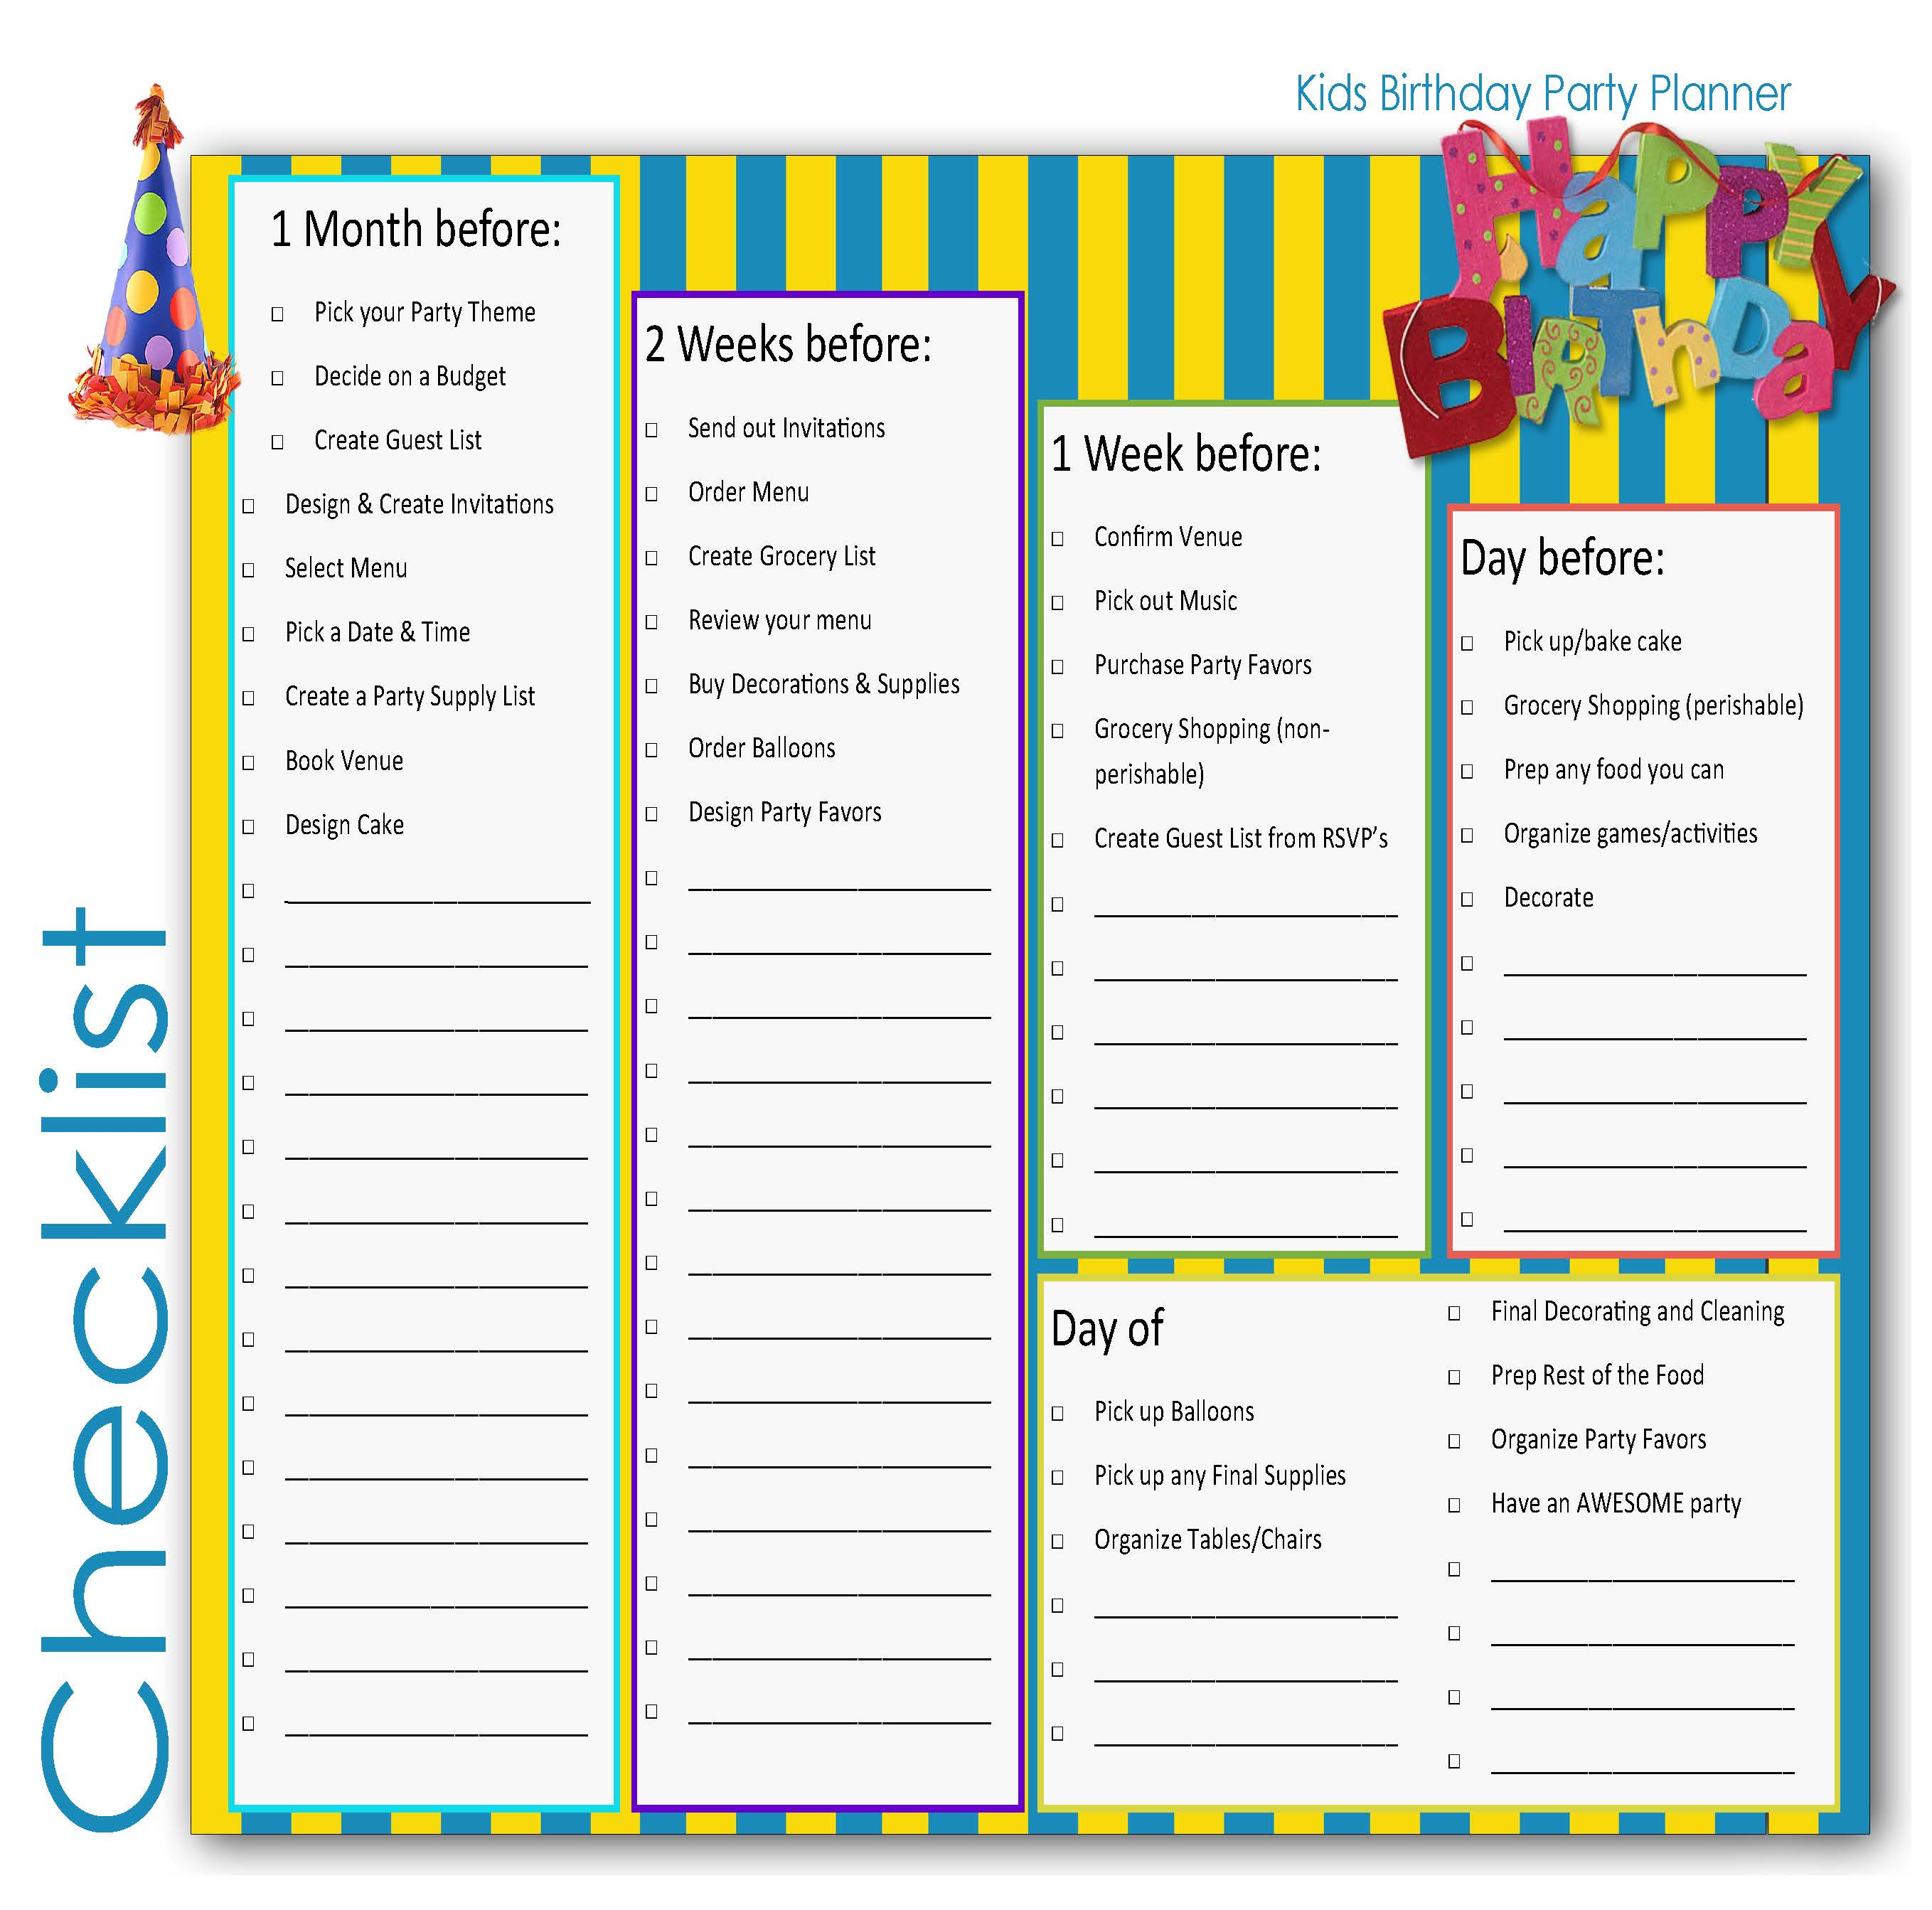 26 Life-easing Birthday Party Checklists